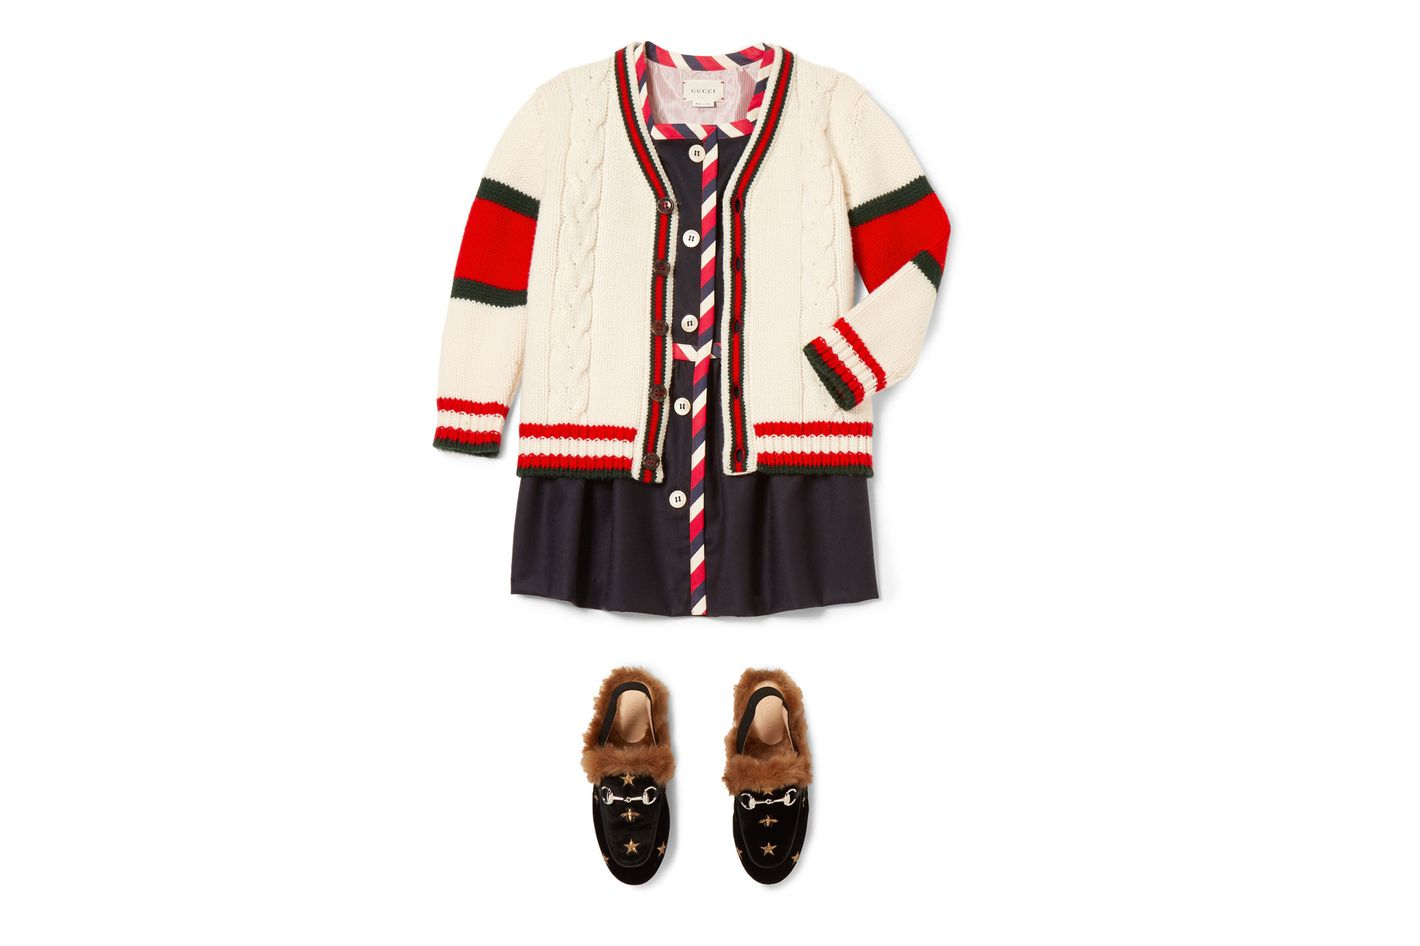 b9029042e8f71 Gucci Launches Kids Collection With Net-a-Porter